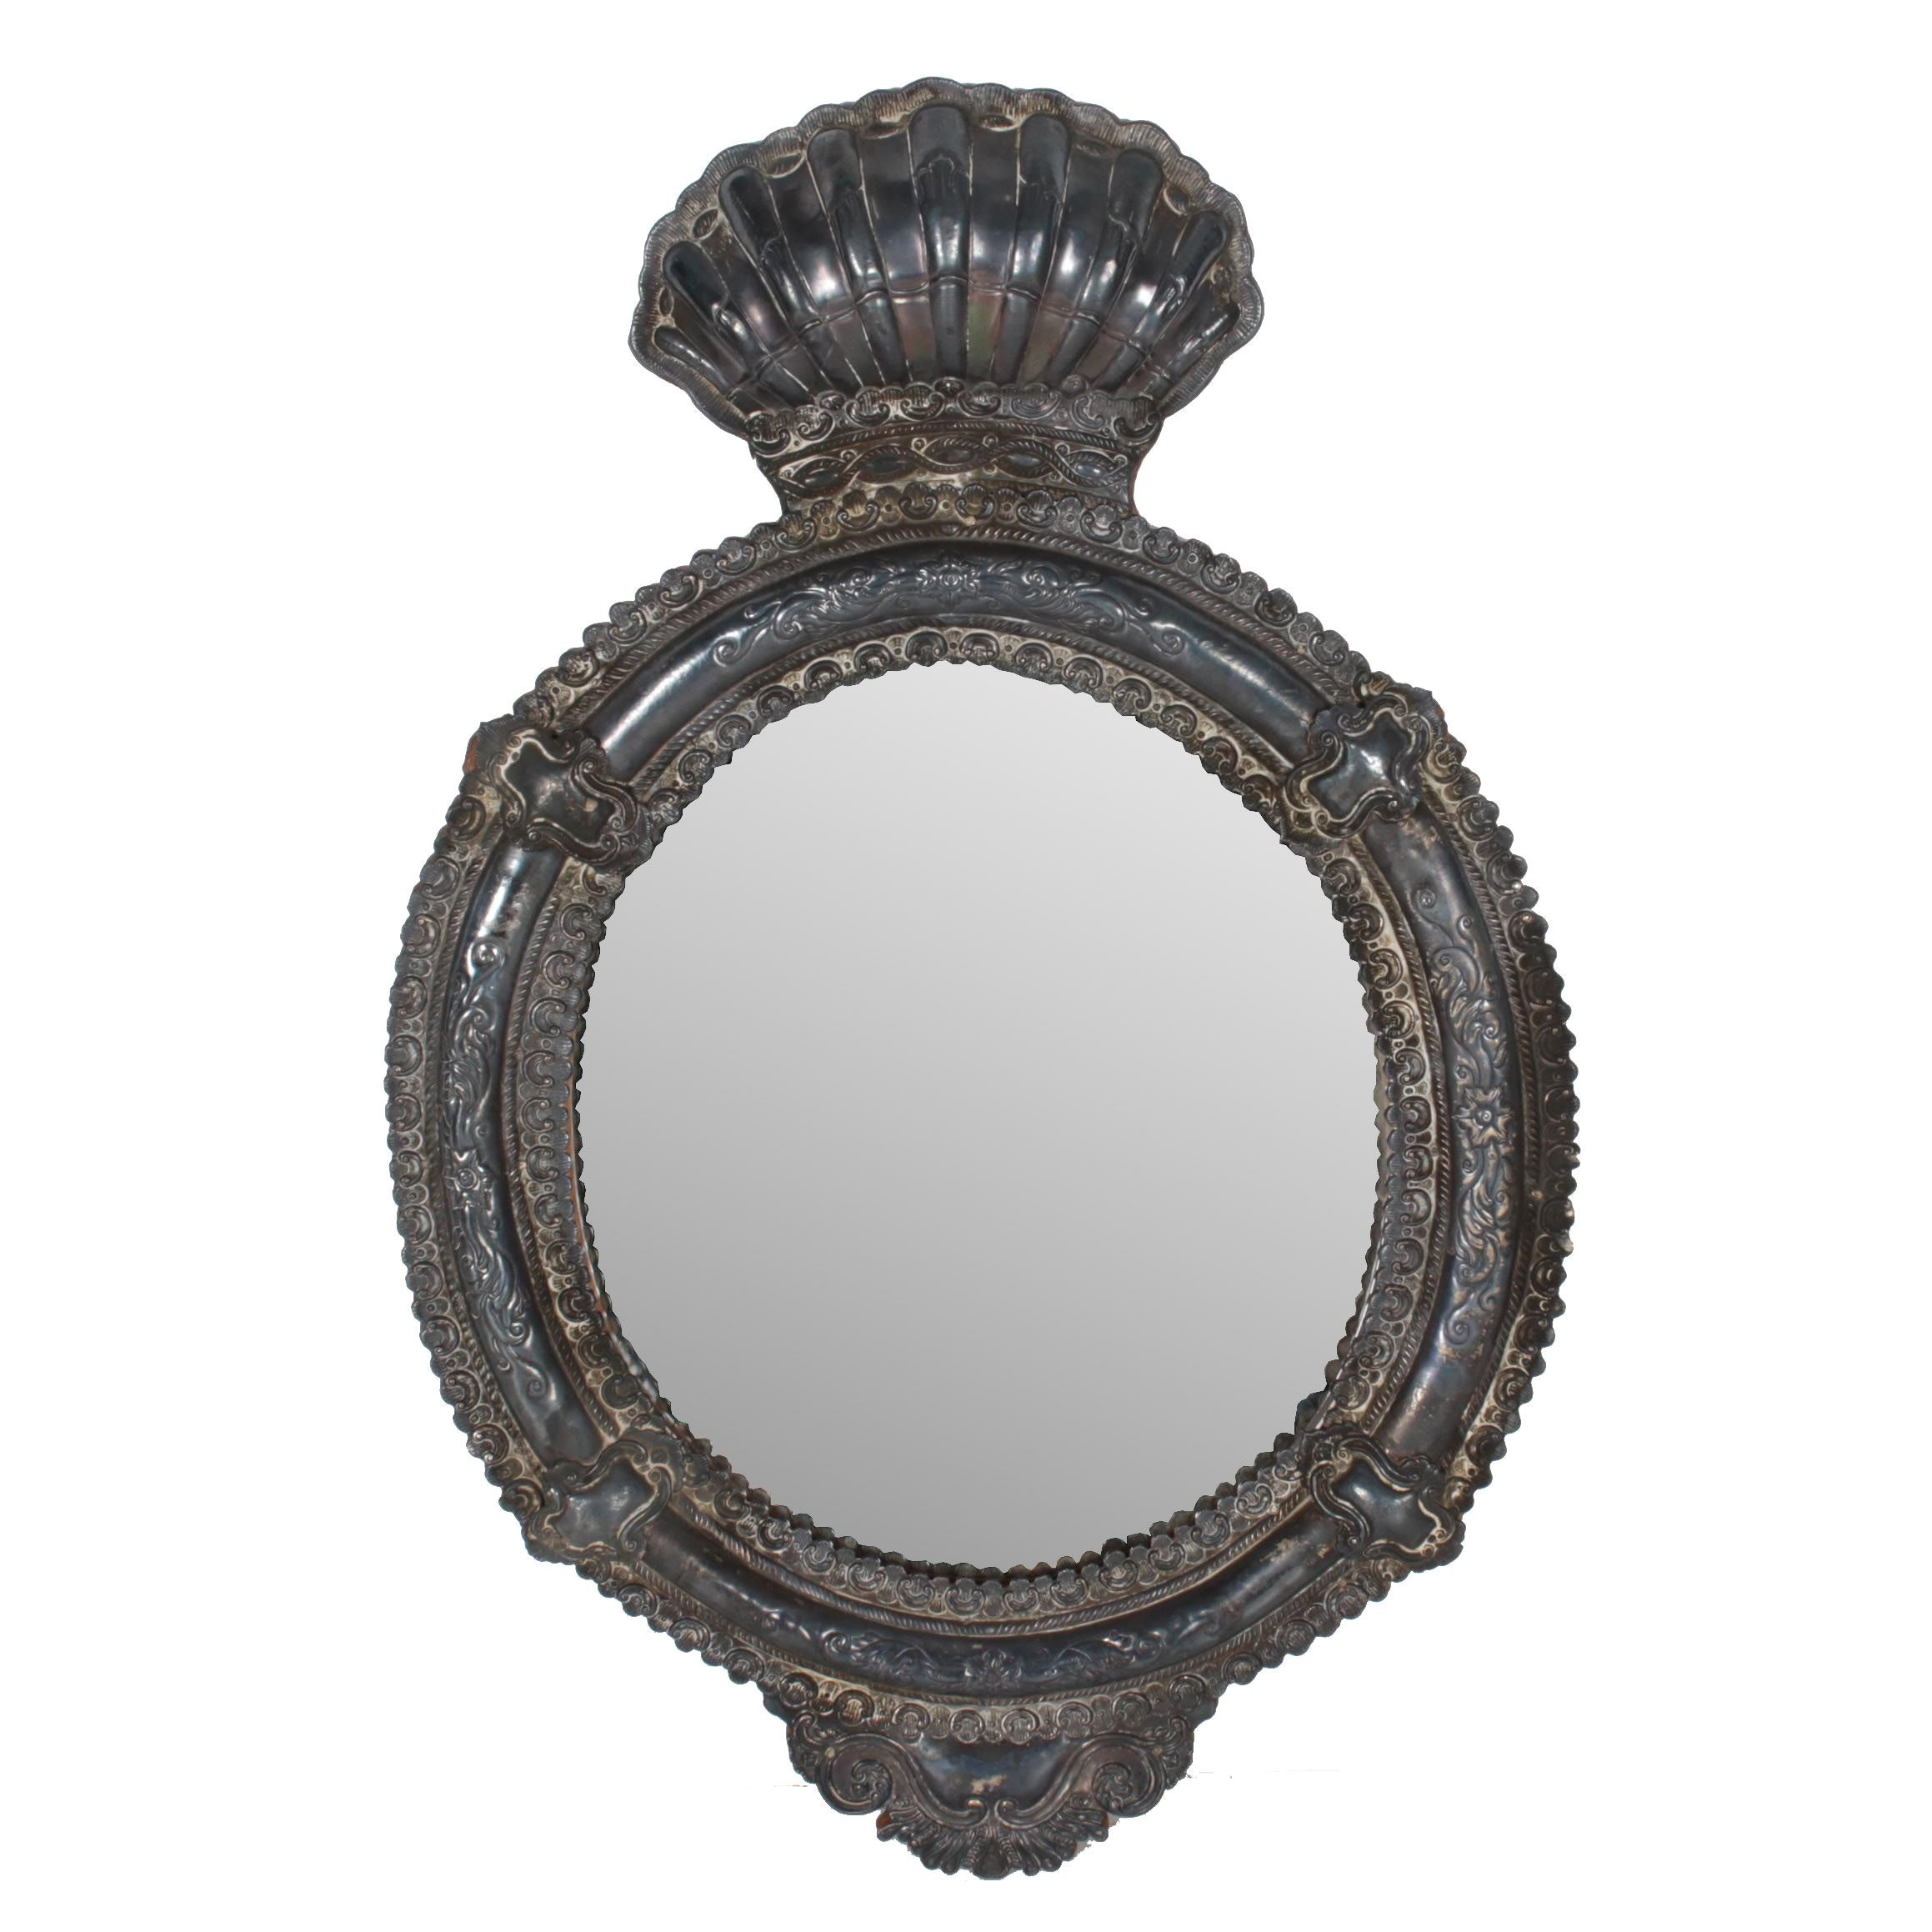 Spanish Style Silver Plate Oval Wall Mirror Frame